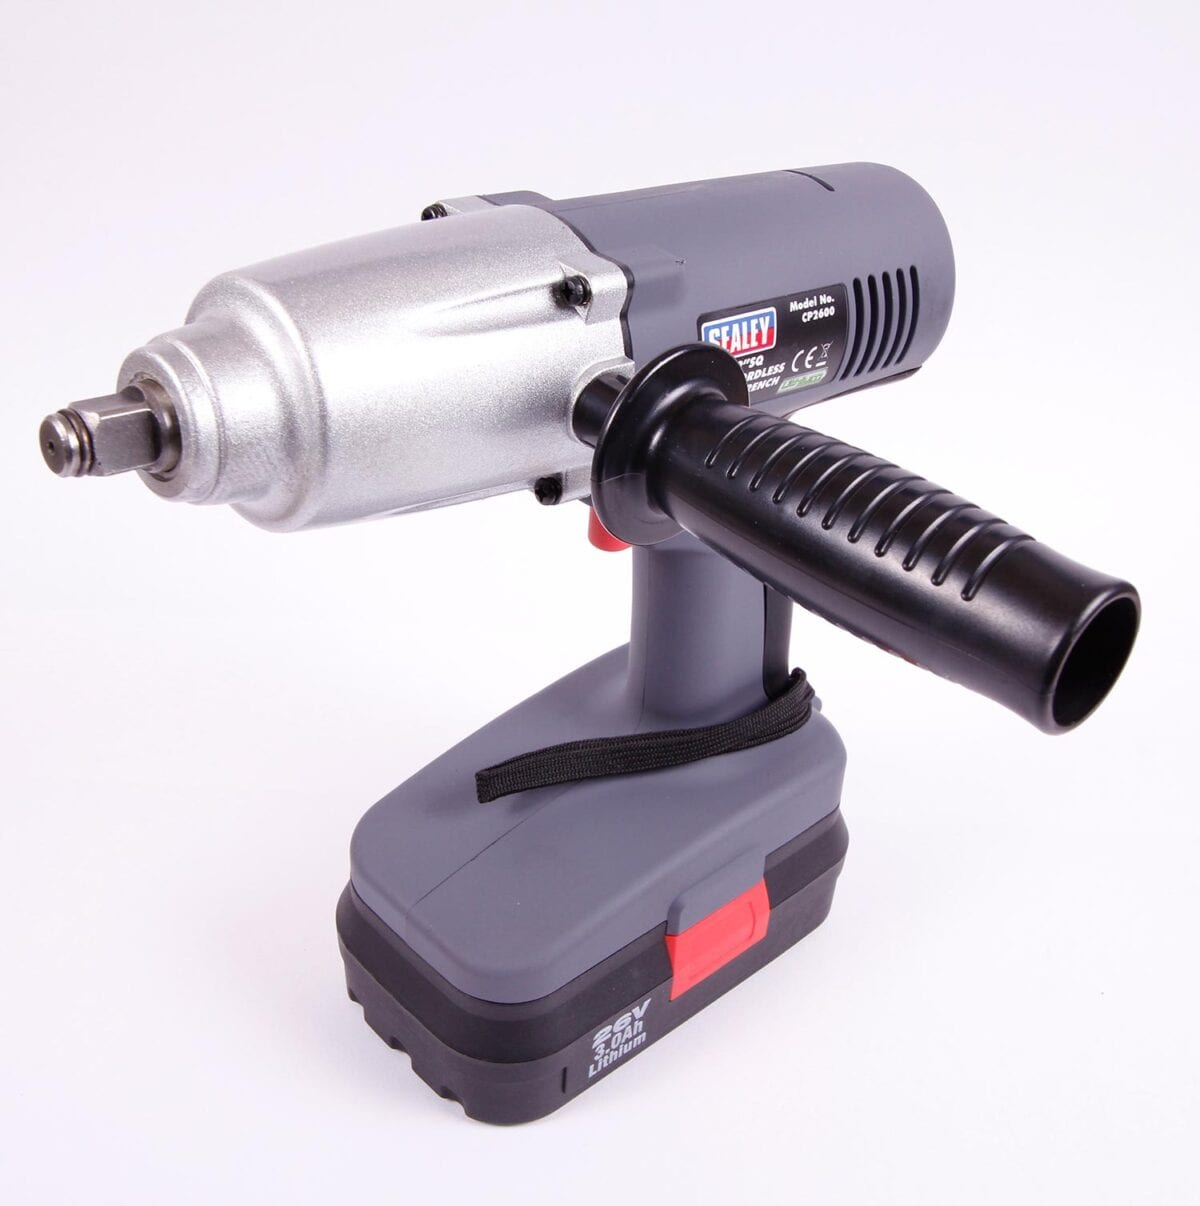 016_Sealey-Impact-Wrench-CP2600-007